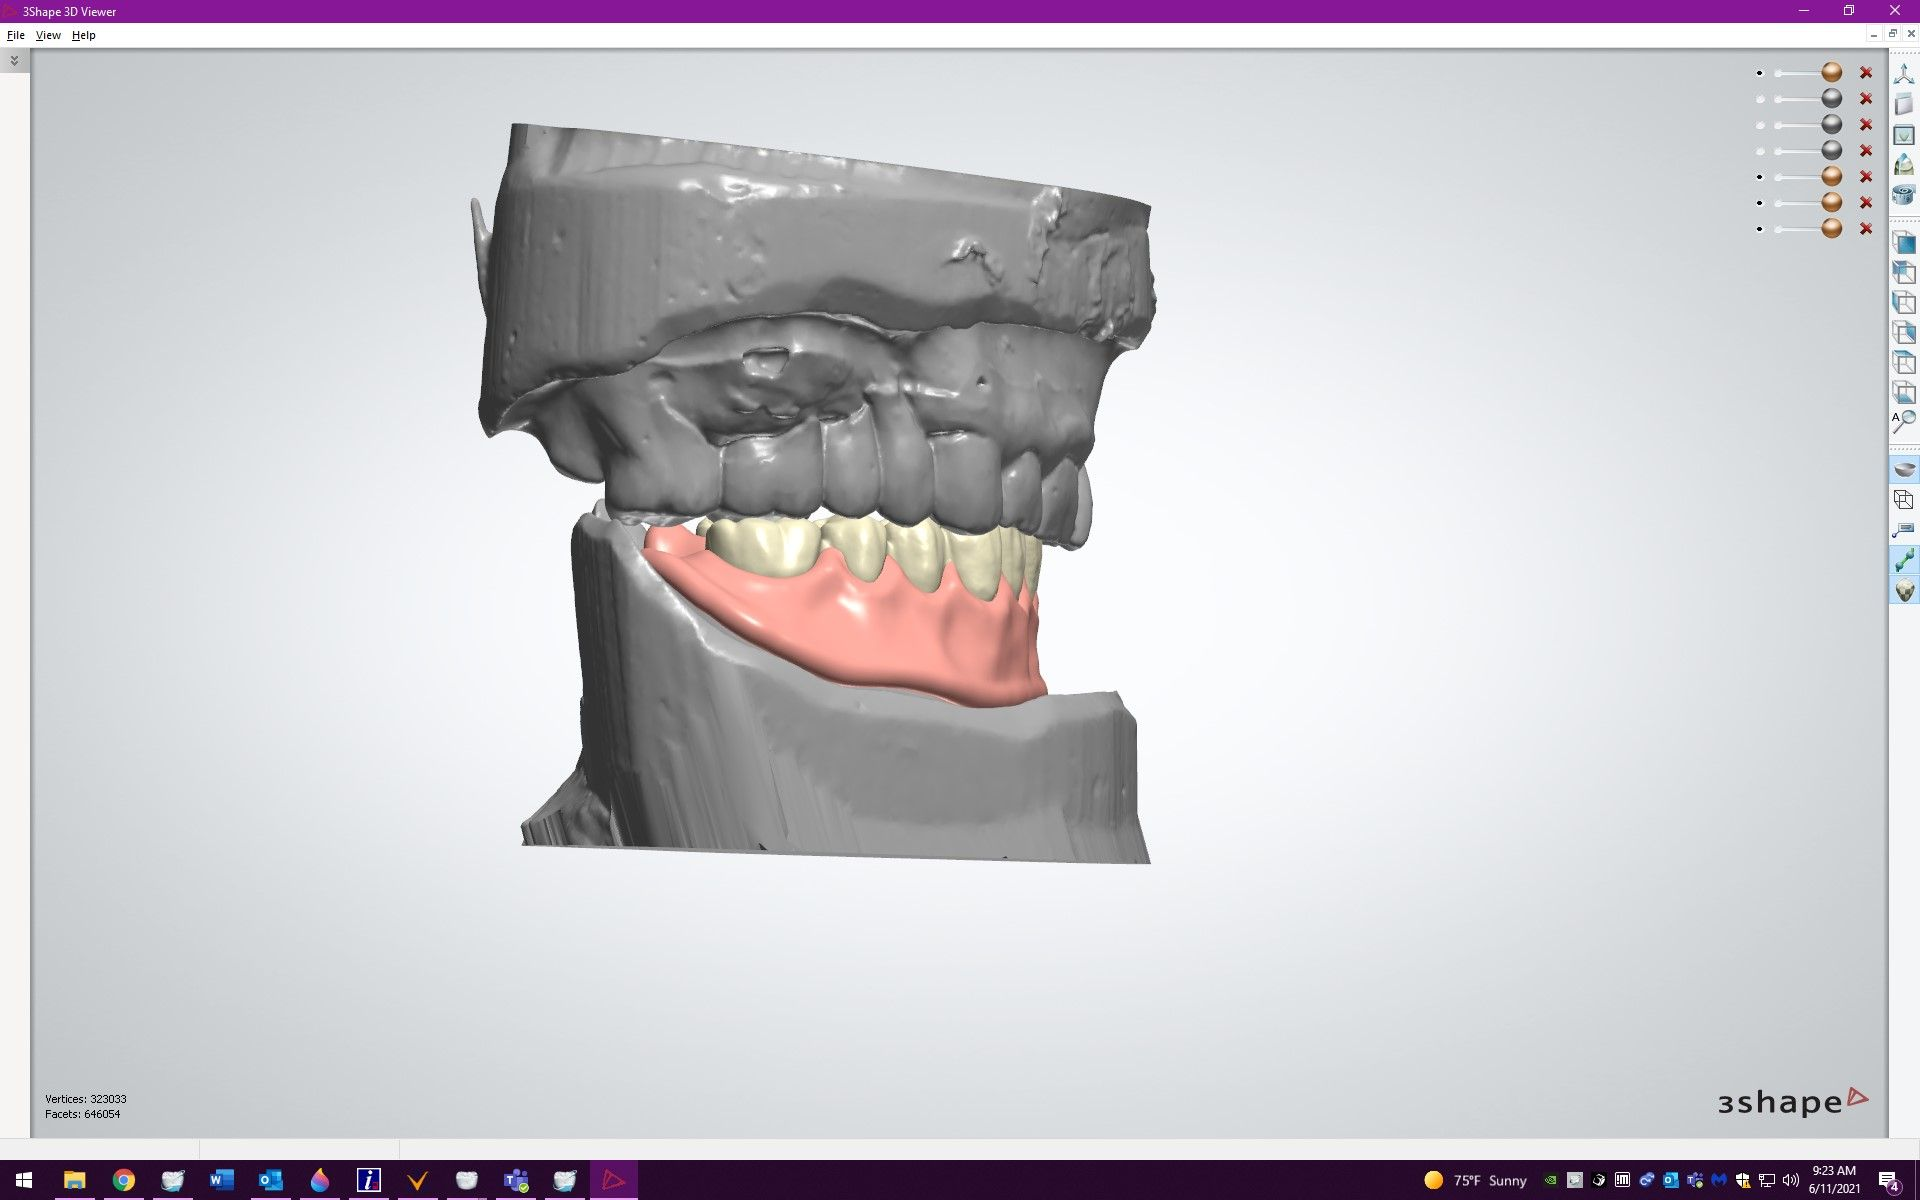 Figure 17. Virtual lateral view of final setup prior to processing.